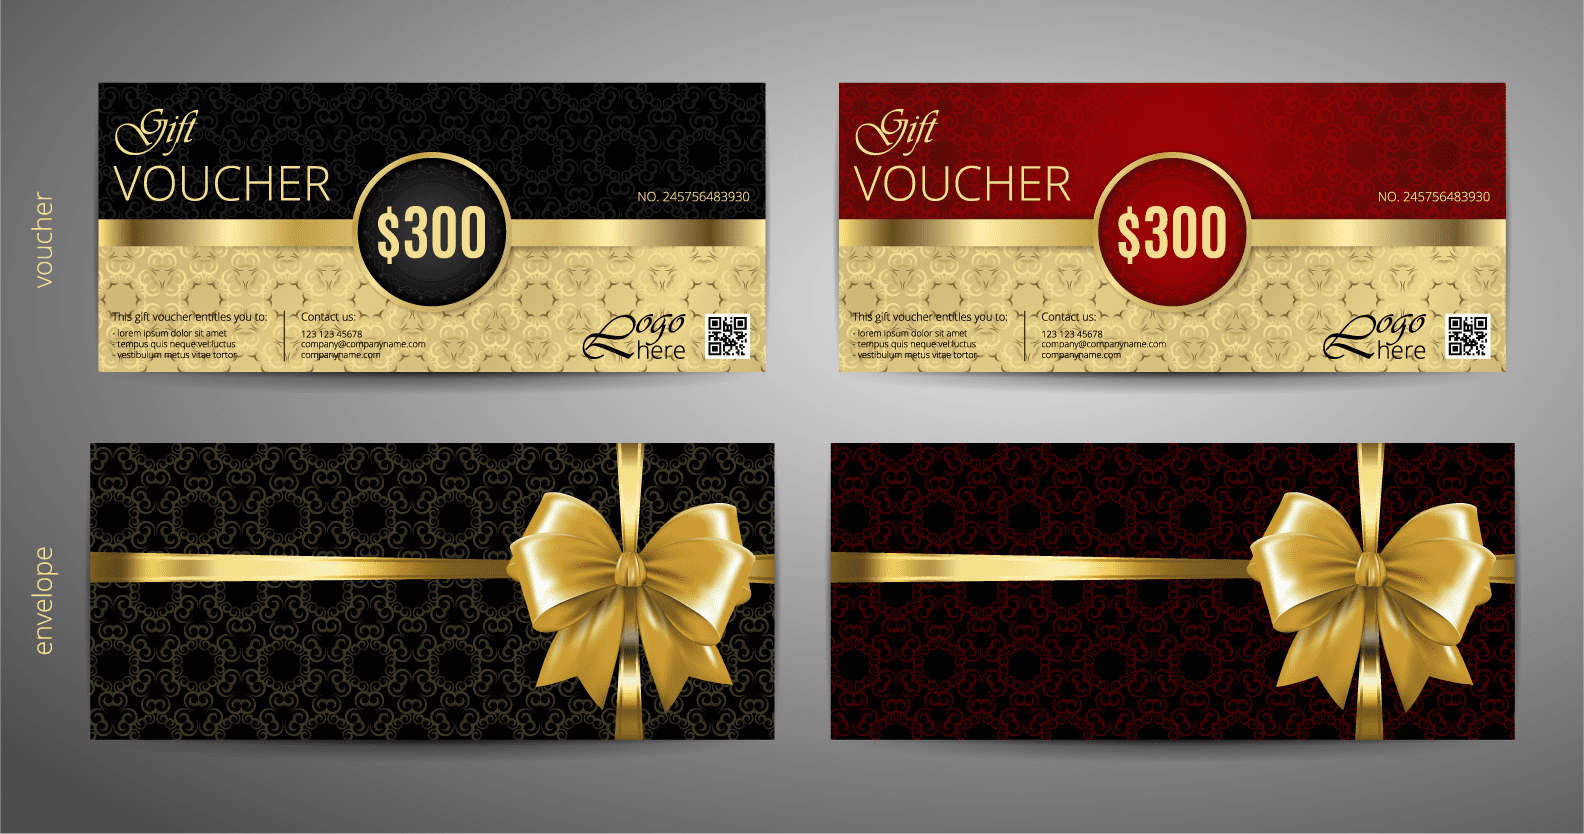 Gift Vouchers with Envelop05 [Converted]